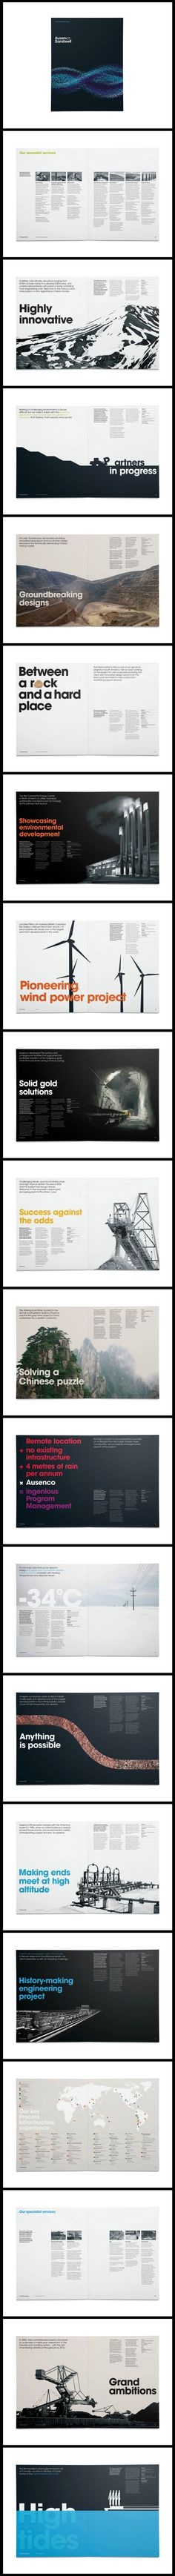 My kind of page layout: it lets the typography and photography speak for itself. There is absolutely zero clutter. // Ausenco by Chris Maclean Book Design Layout, Graphic Design Layouts, Print Layout, Brochure Design, Typography Layout, Graphic Design Typography, Graphic Design Illustration, Cv Inspiration, Graphic Design Inspiration